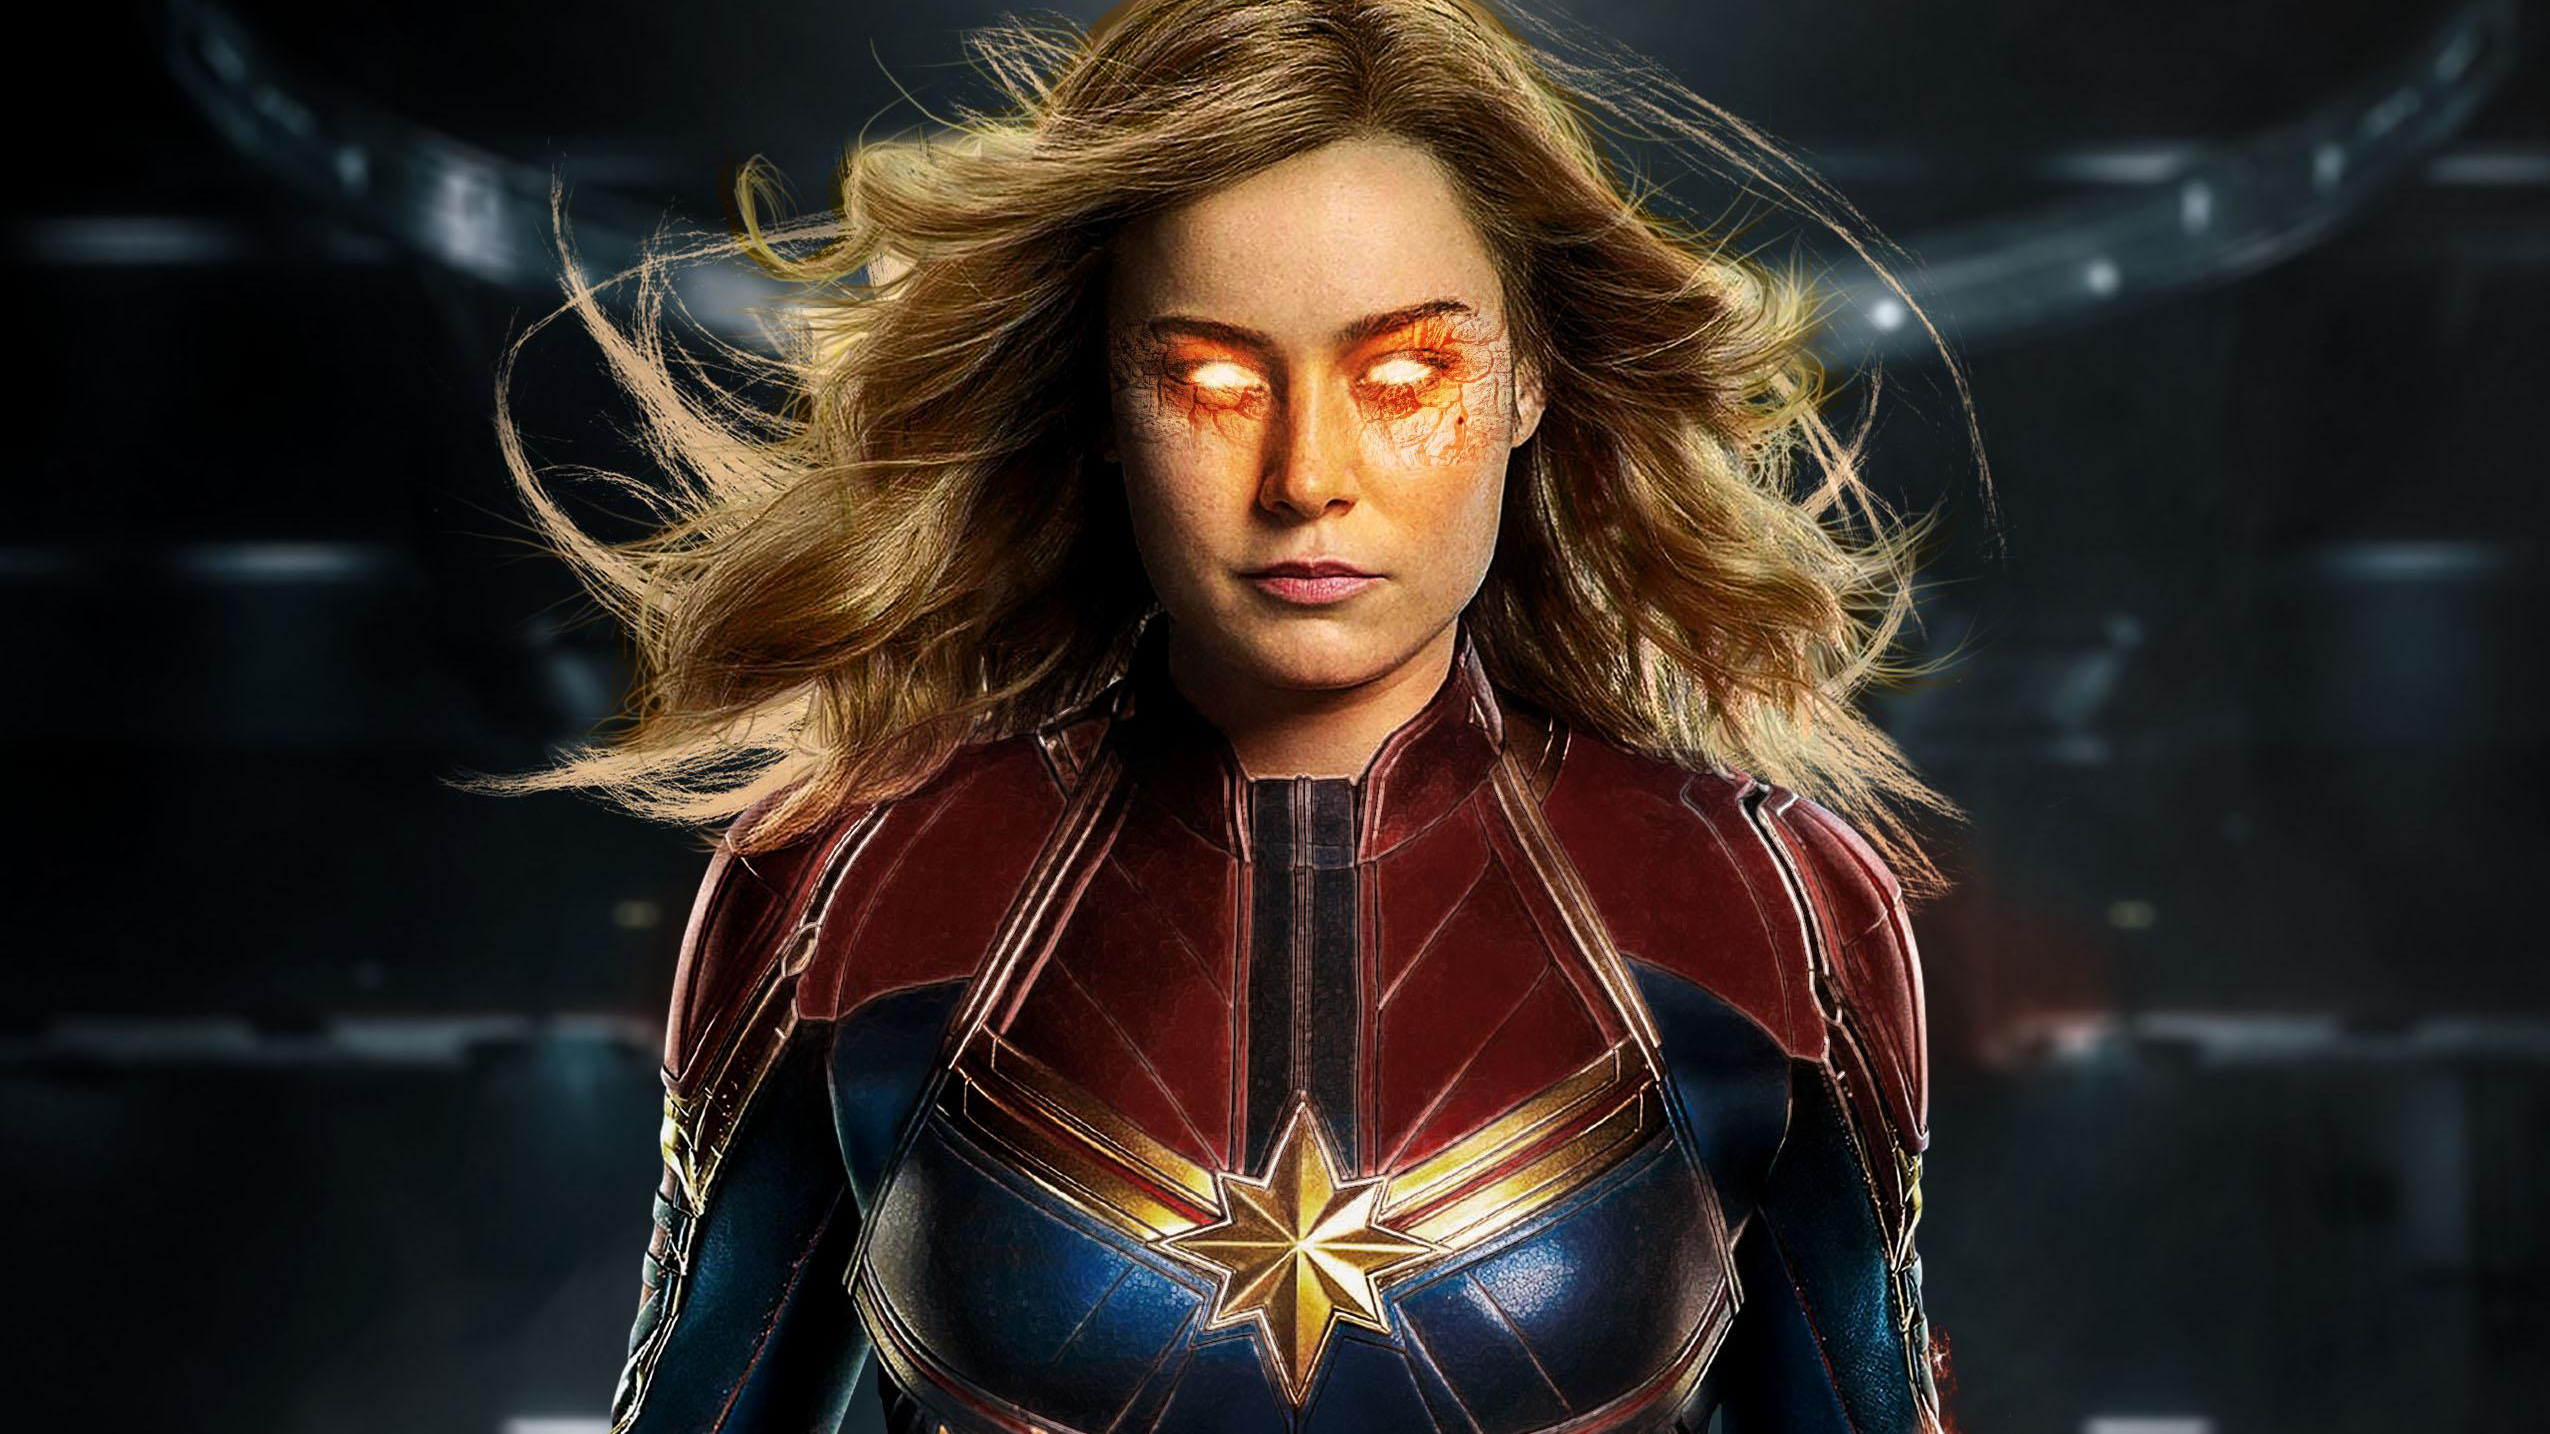 Wallpaper 4k Captain Marvel Movie 2019 Movies Wallpapers